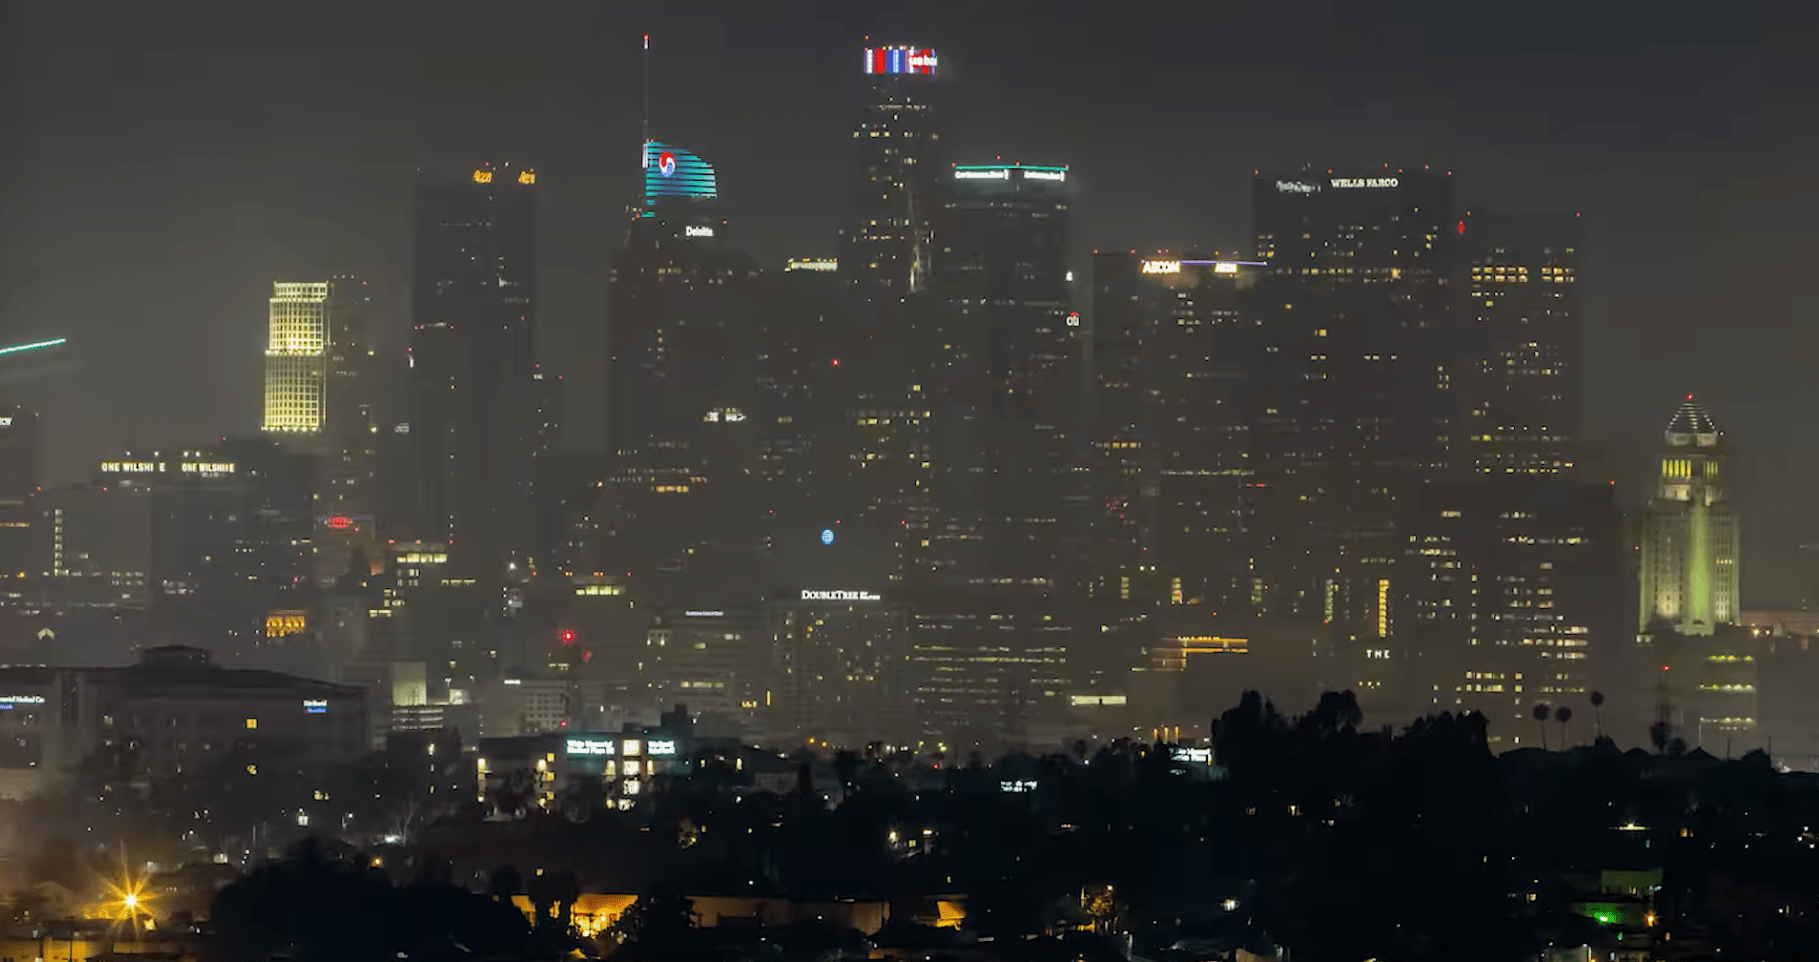 The thousands of illegal fireworks over L.A. cause air pollution <br><small>Article with quote by UCI Prof. Jun Wu</small>